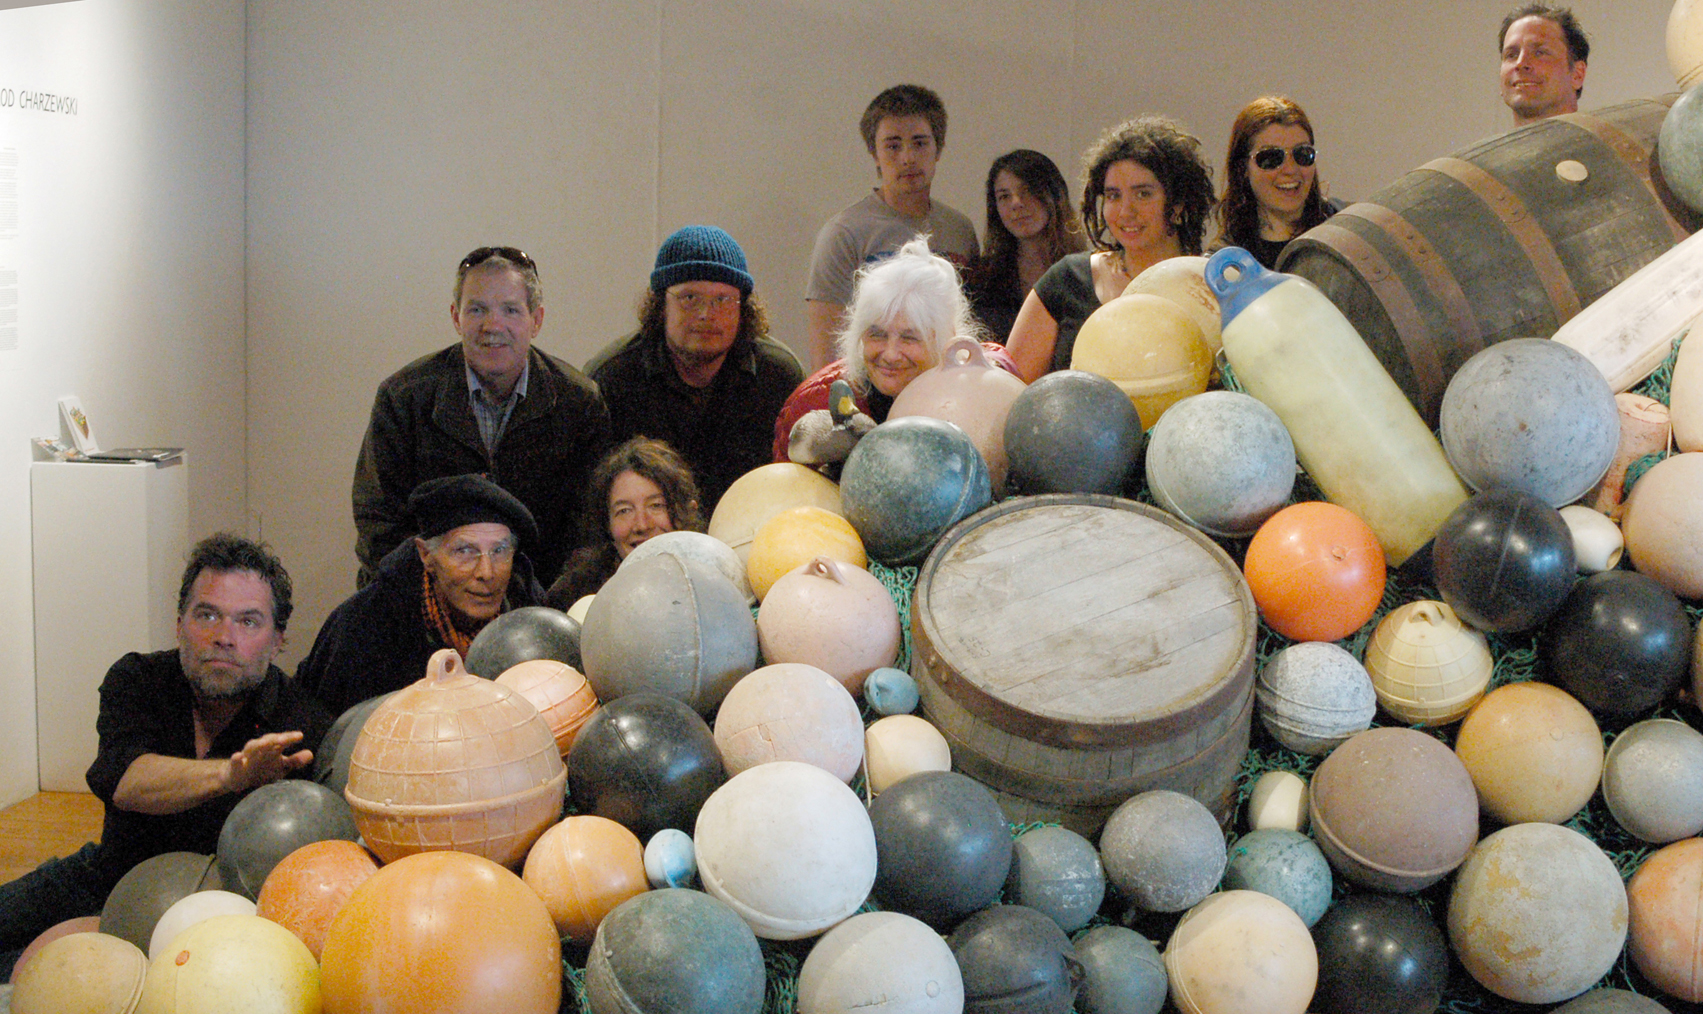 """Old Town Artist in Residence Jarod Charzewski, upper right, poses with some of the people who helped create """"Buoys and Barrels,"""" a community art project, last Friday at Bunnell Street Arts Center. From left to right are Michael Walsh, Peter Kauffman, Carl Bice, Asia Freeman, Jeremy Baugh , Wendy Erd, Darien Loftiem, Samantha Inman,  Desiree Hagen, Sarah Frary and Charzewski.-Photo by Michael Armstrong; Homer News"""